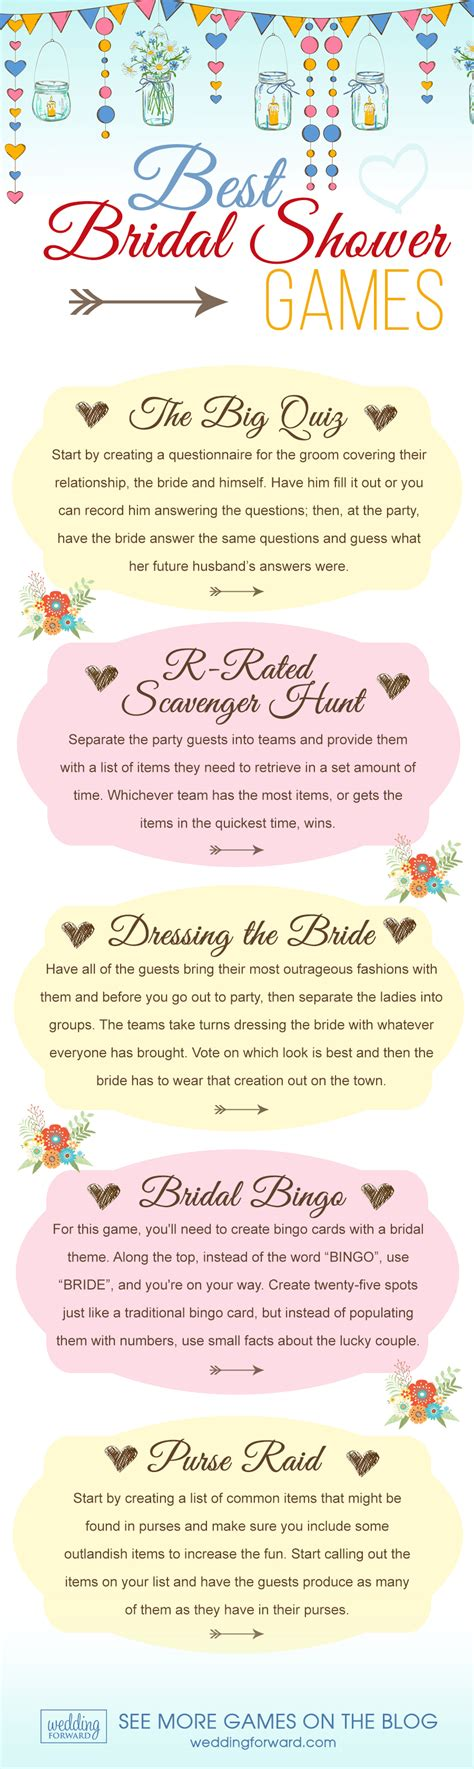 7 of the best bridal shower for the bridal shower - Top Bridal Shower And Activities